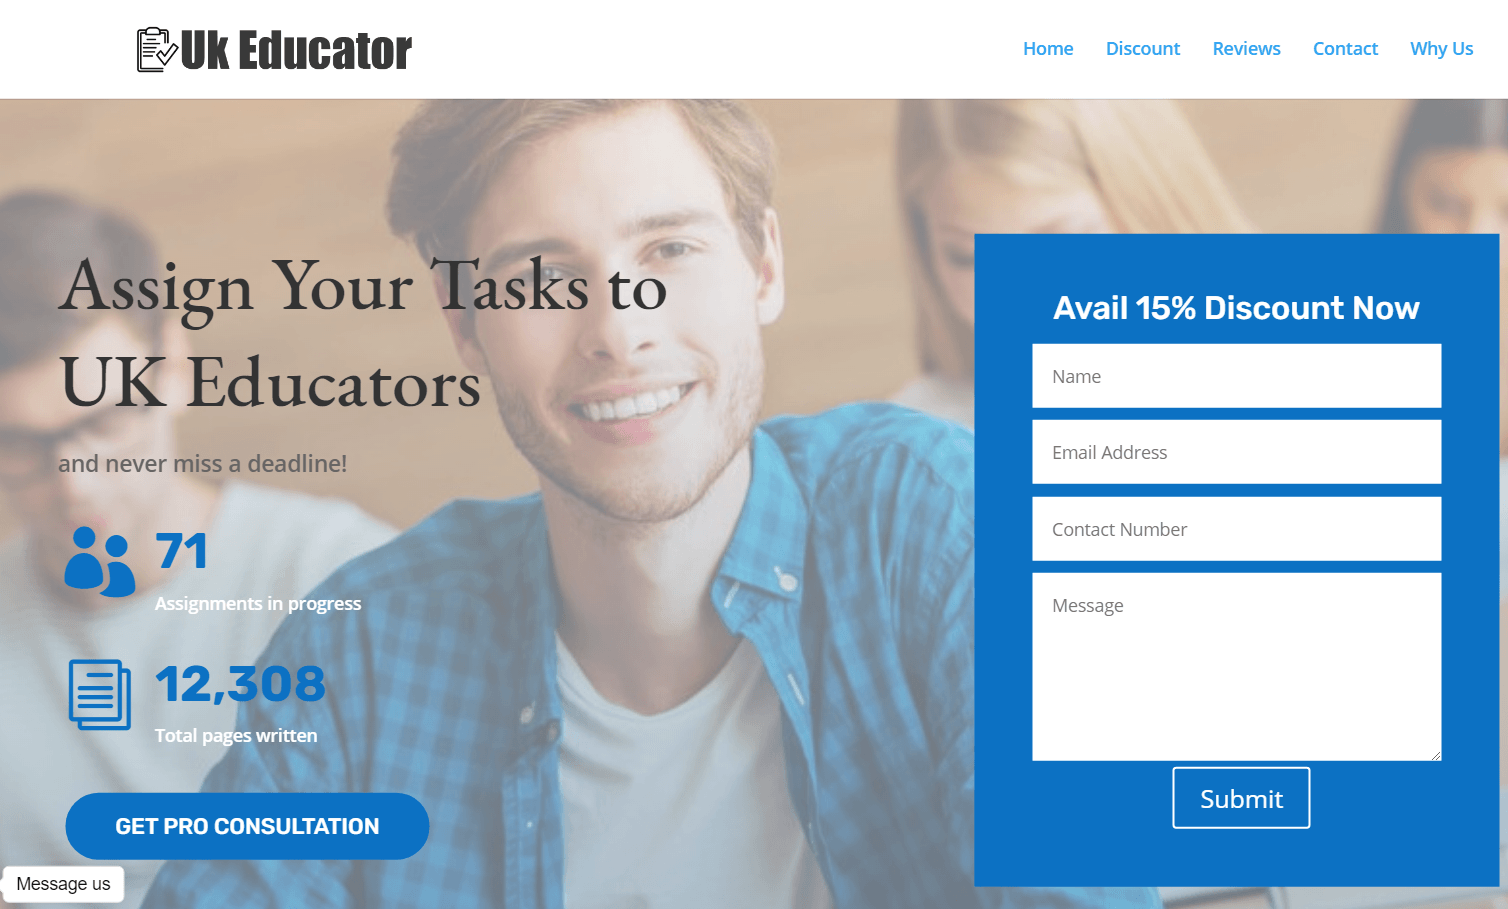 ukeducator.co.uk